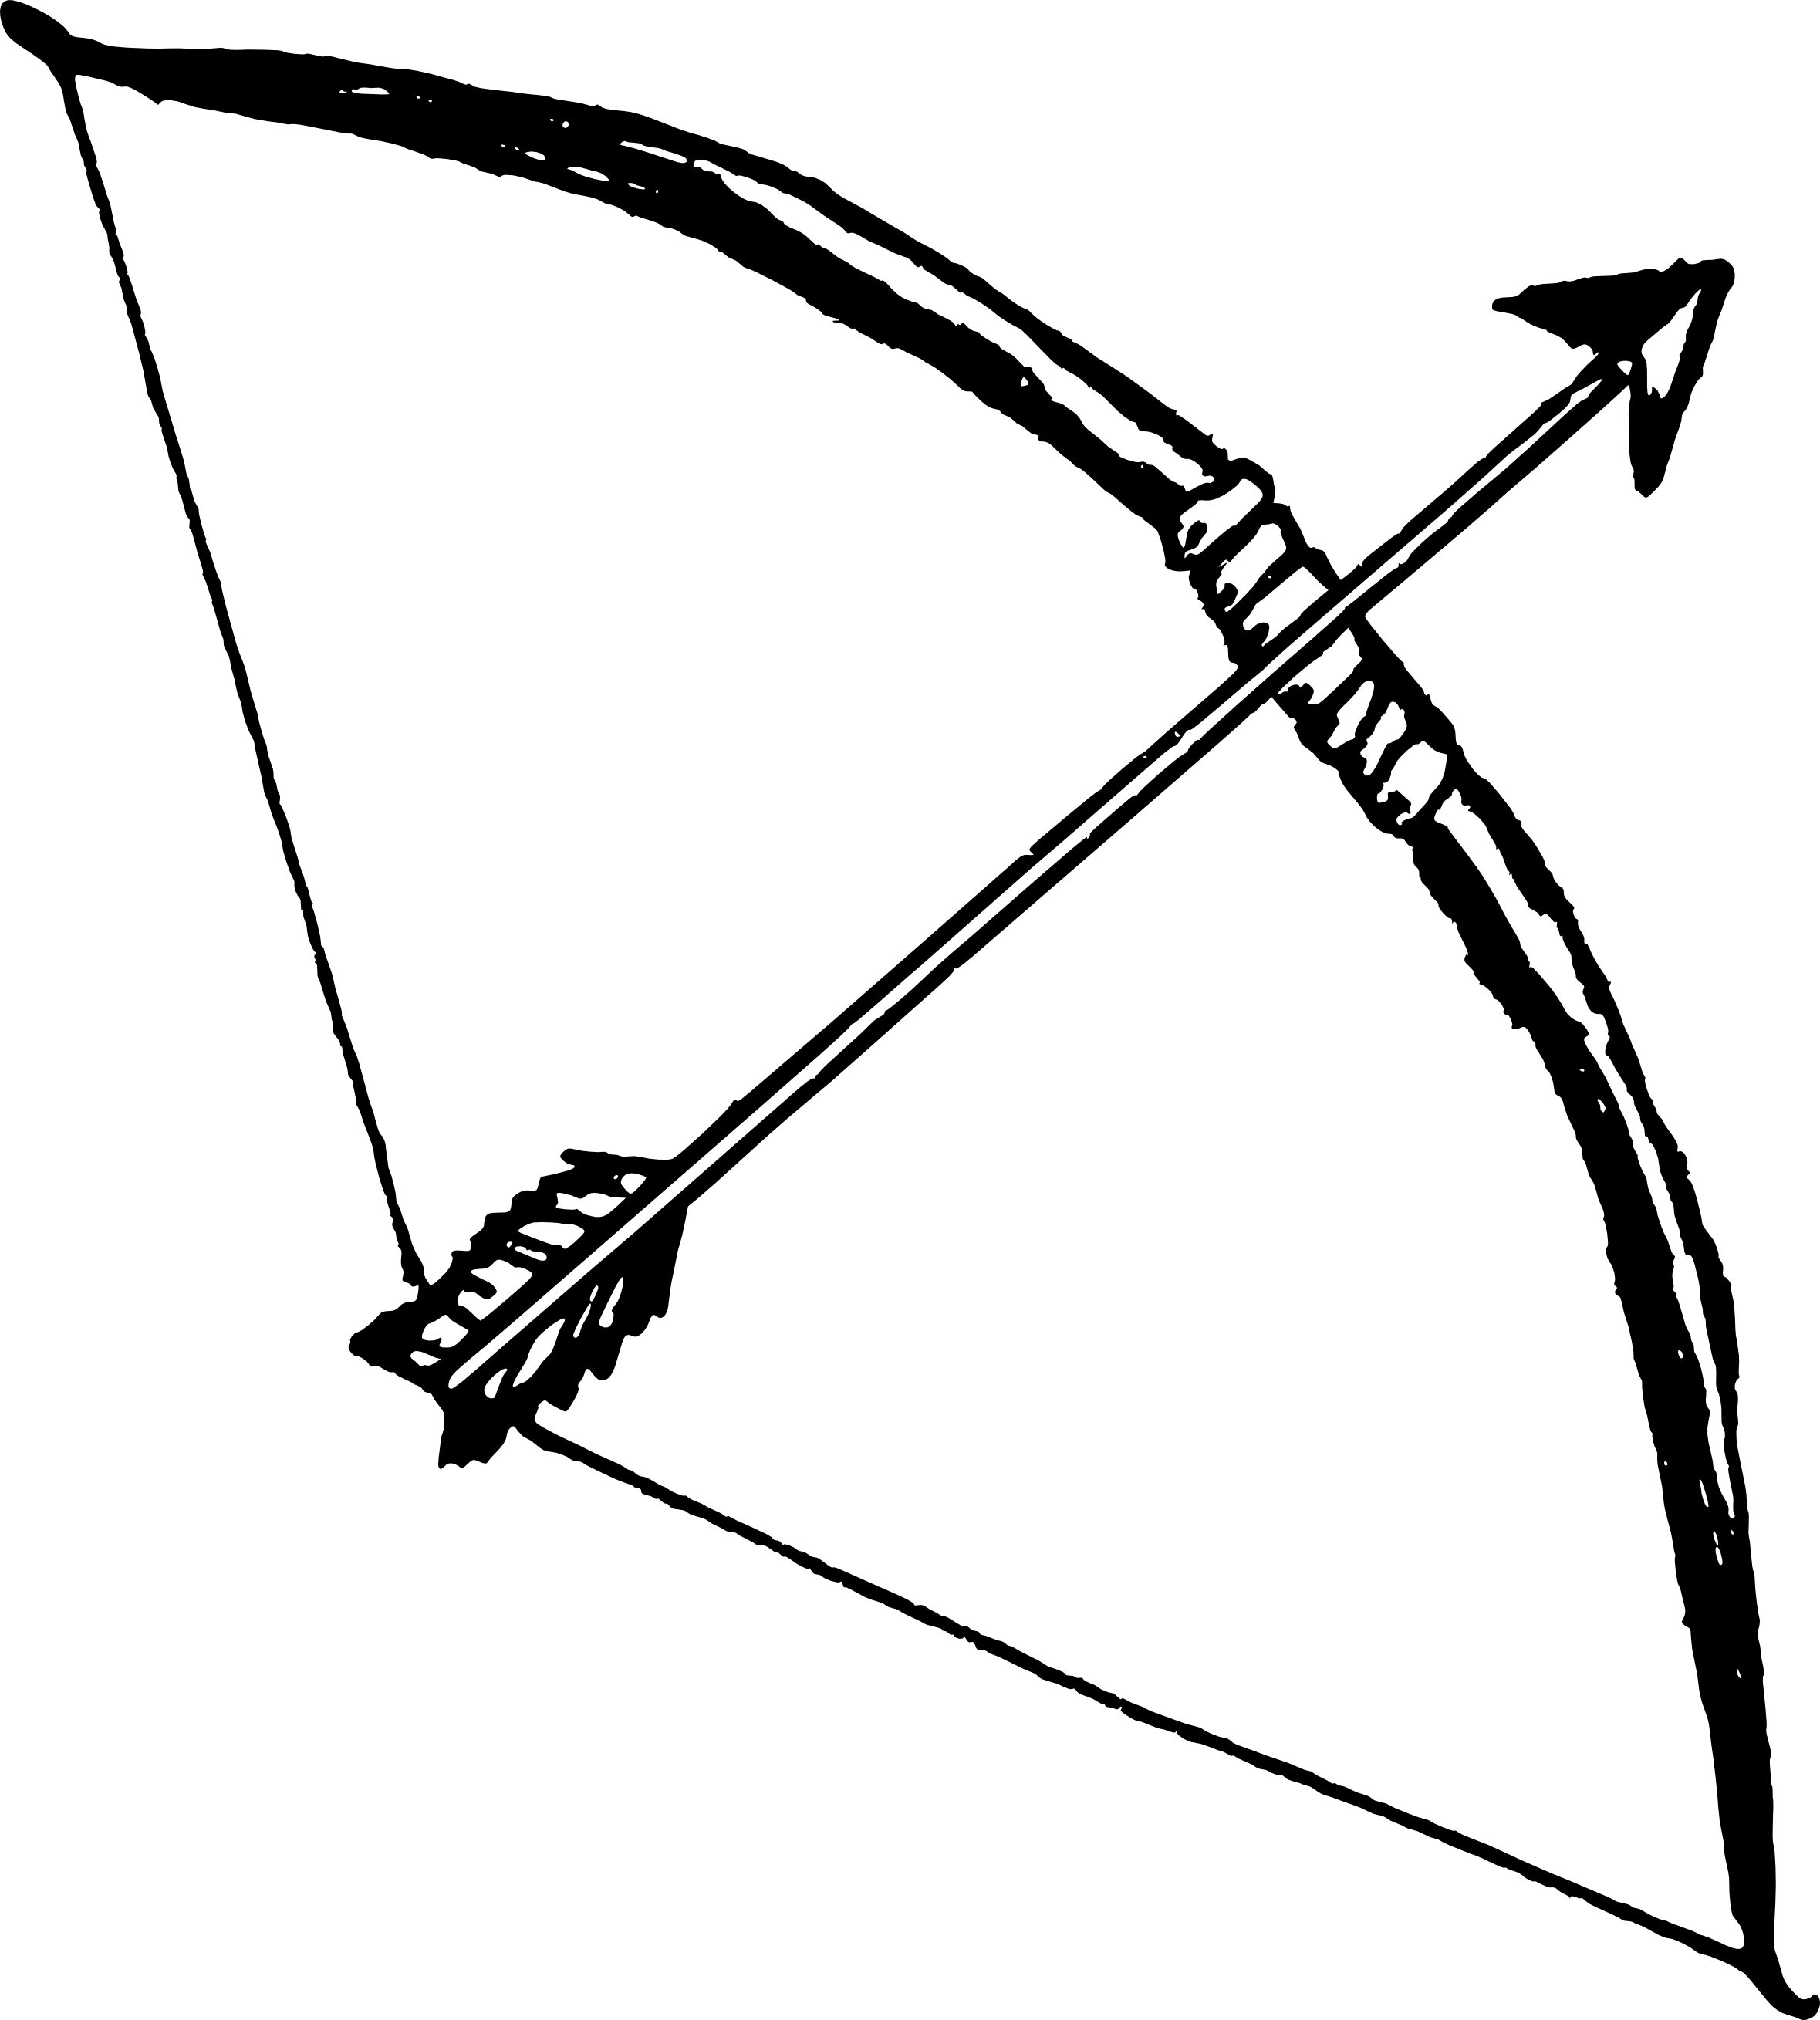 Tribal arrow clip art picture freeuse Bow And Arrow Silhouette at GetDrawings.com | Free for personal use ... picture freeuse